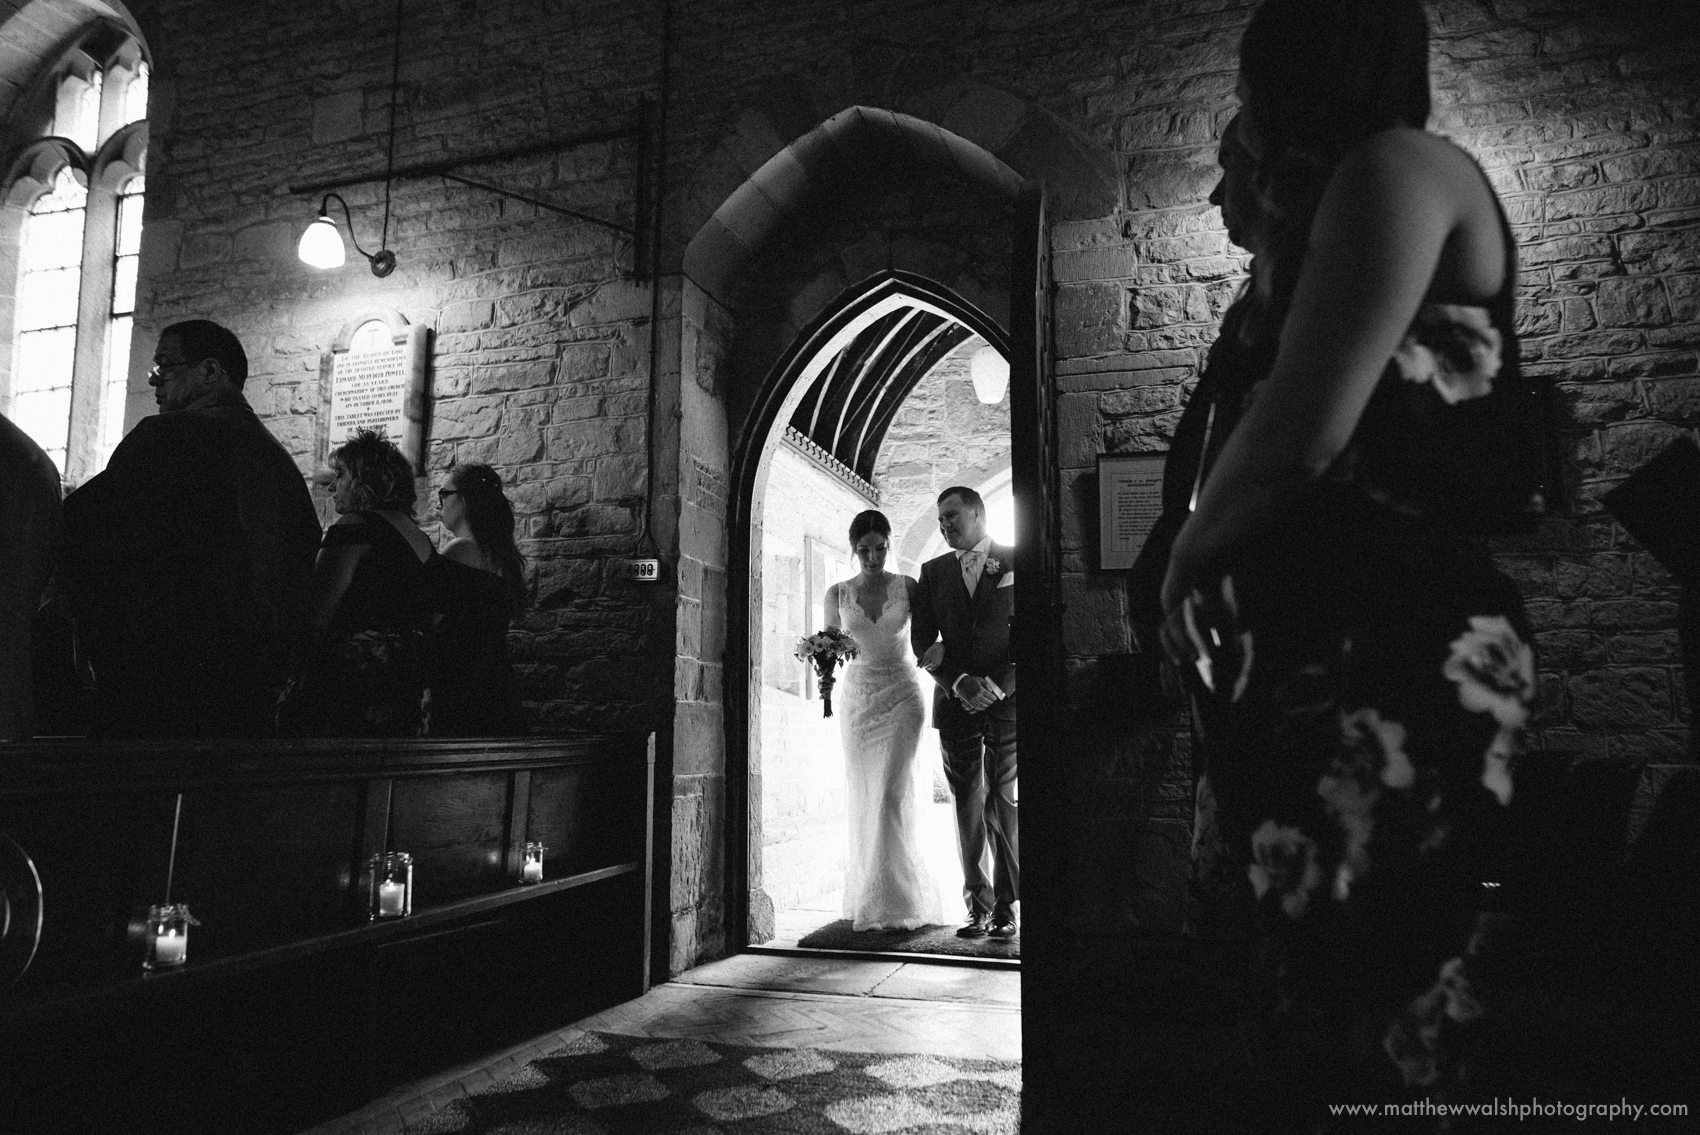 The bride being led through the Church door by her father, a lovely glowing back lit image